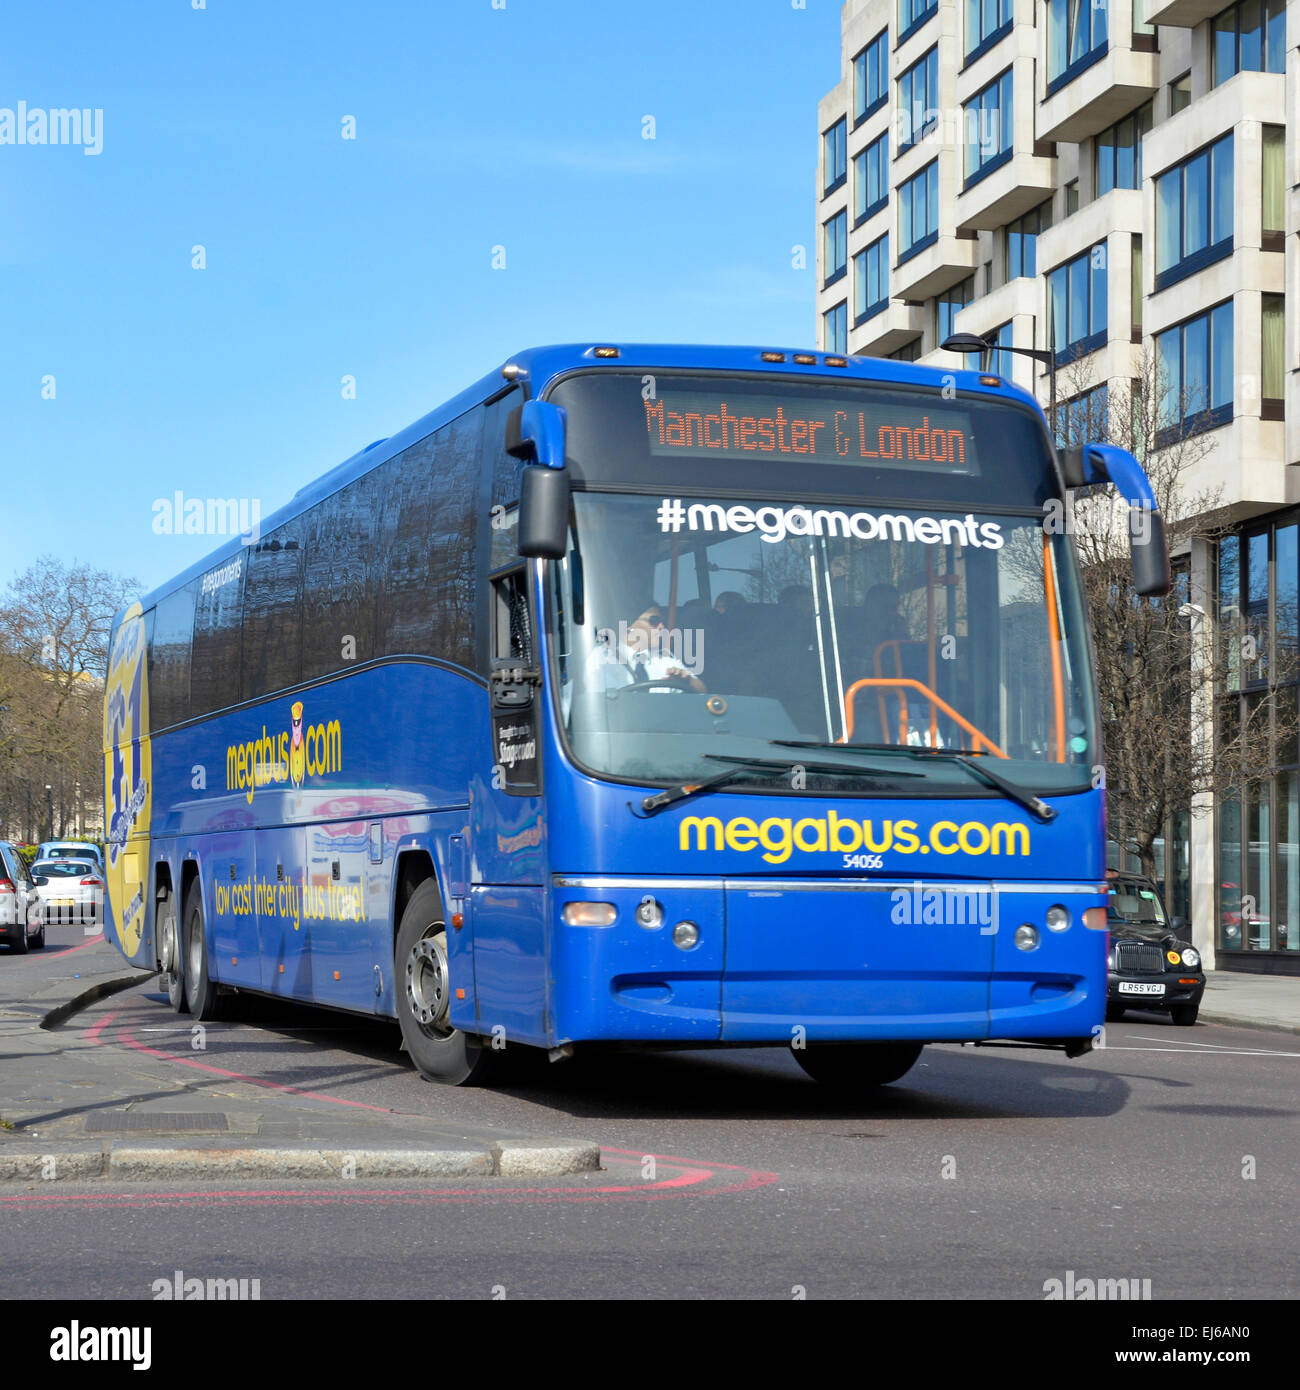 Megabus (brand owned by Stagecoach Group) on London to Manchester route (number plate removed) - Stock Image